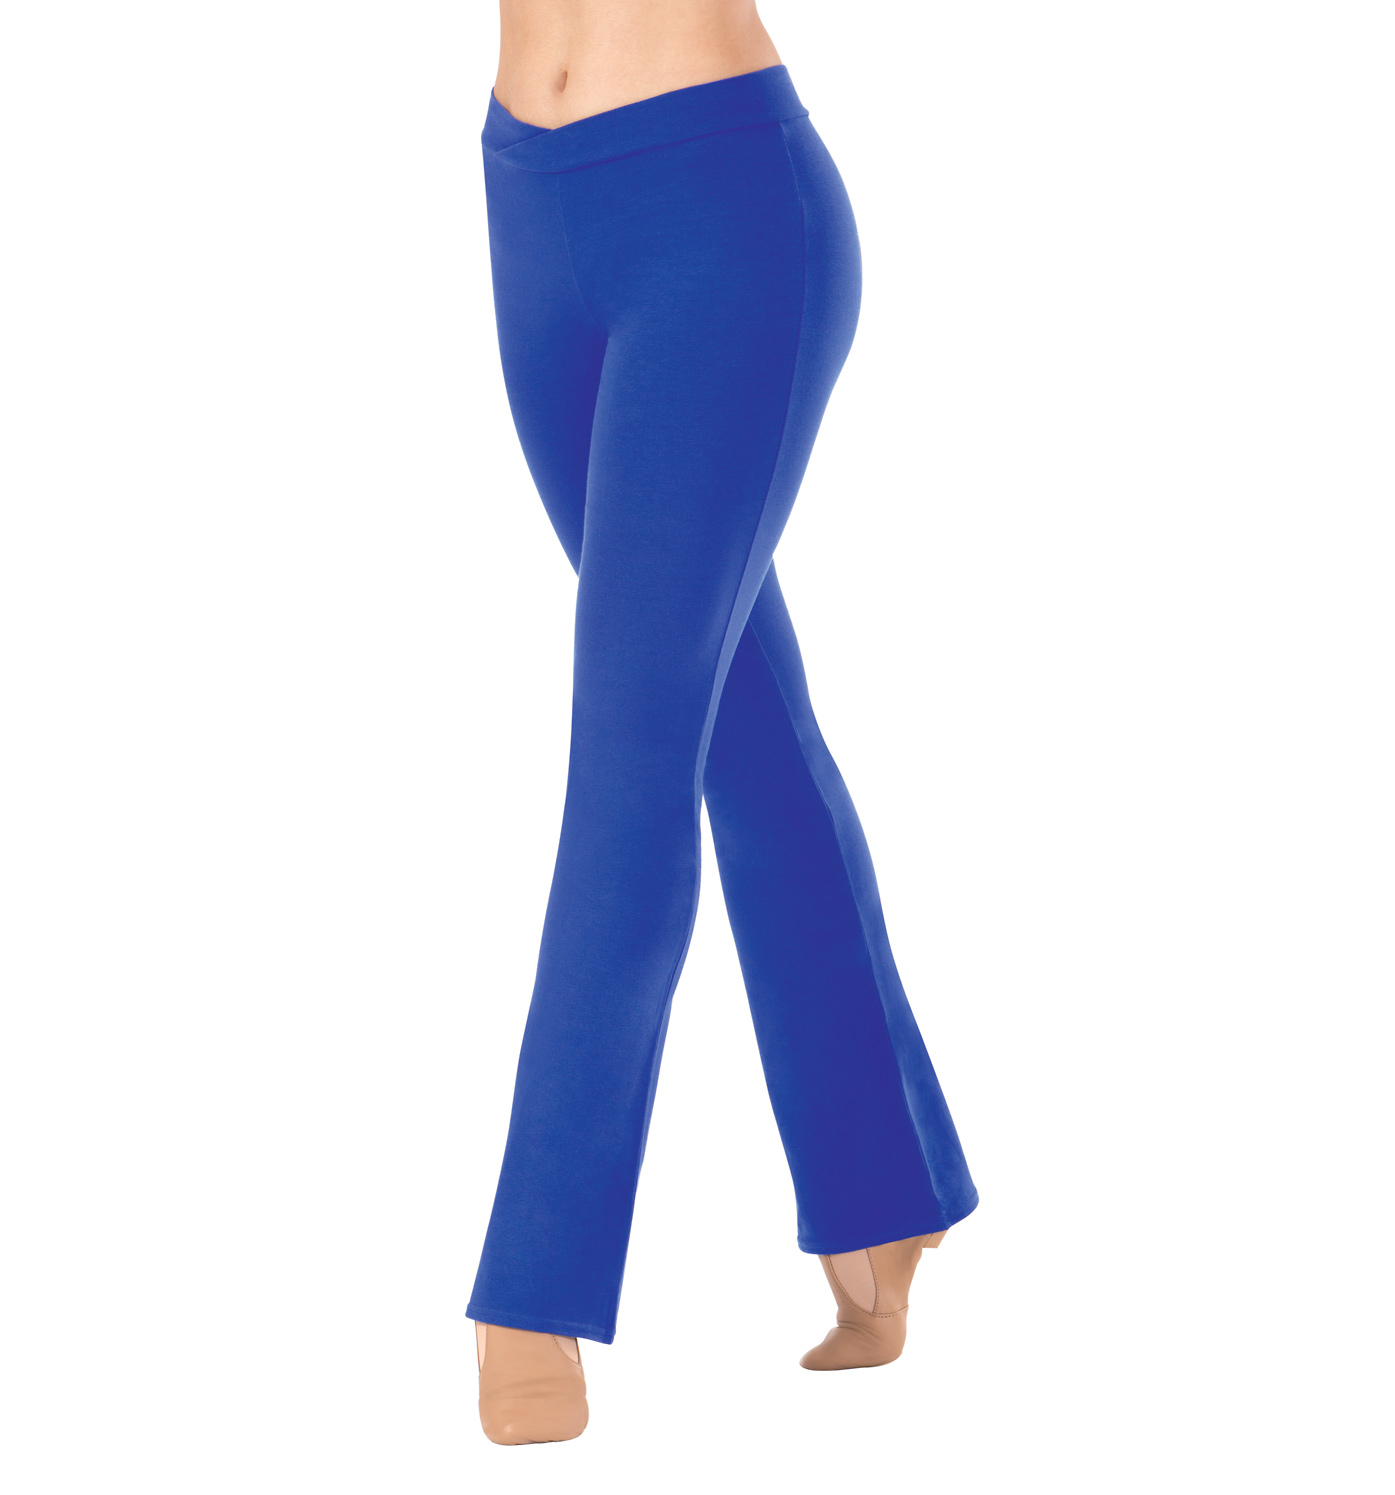 report2day.ml offers a large selection of belly dance pants in traditional belly dancing, tribal, or tribal fusion styles. Shop for harem pants, genie pants, ruffle pants, Turkish pants, salwar pants, and tribal fusion gothic pants.